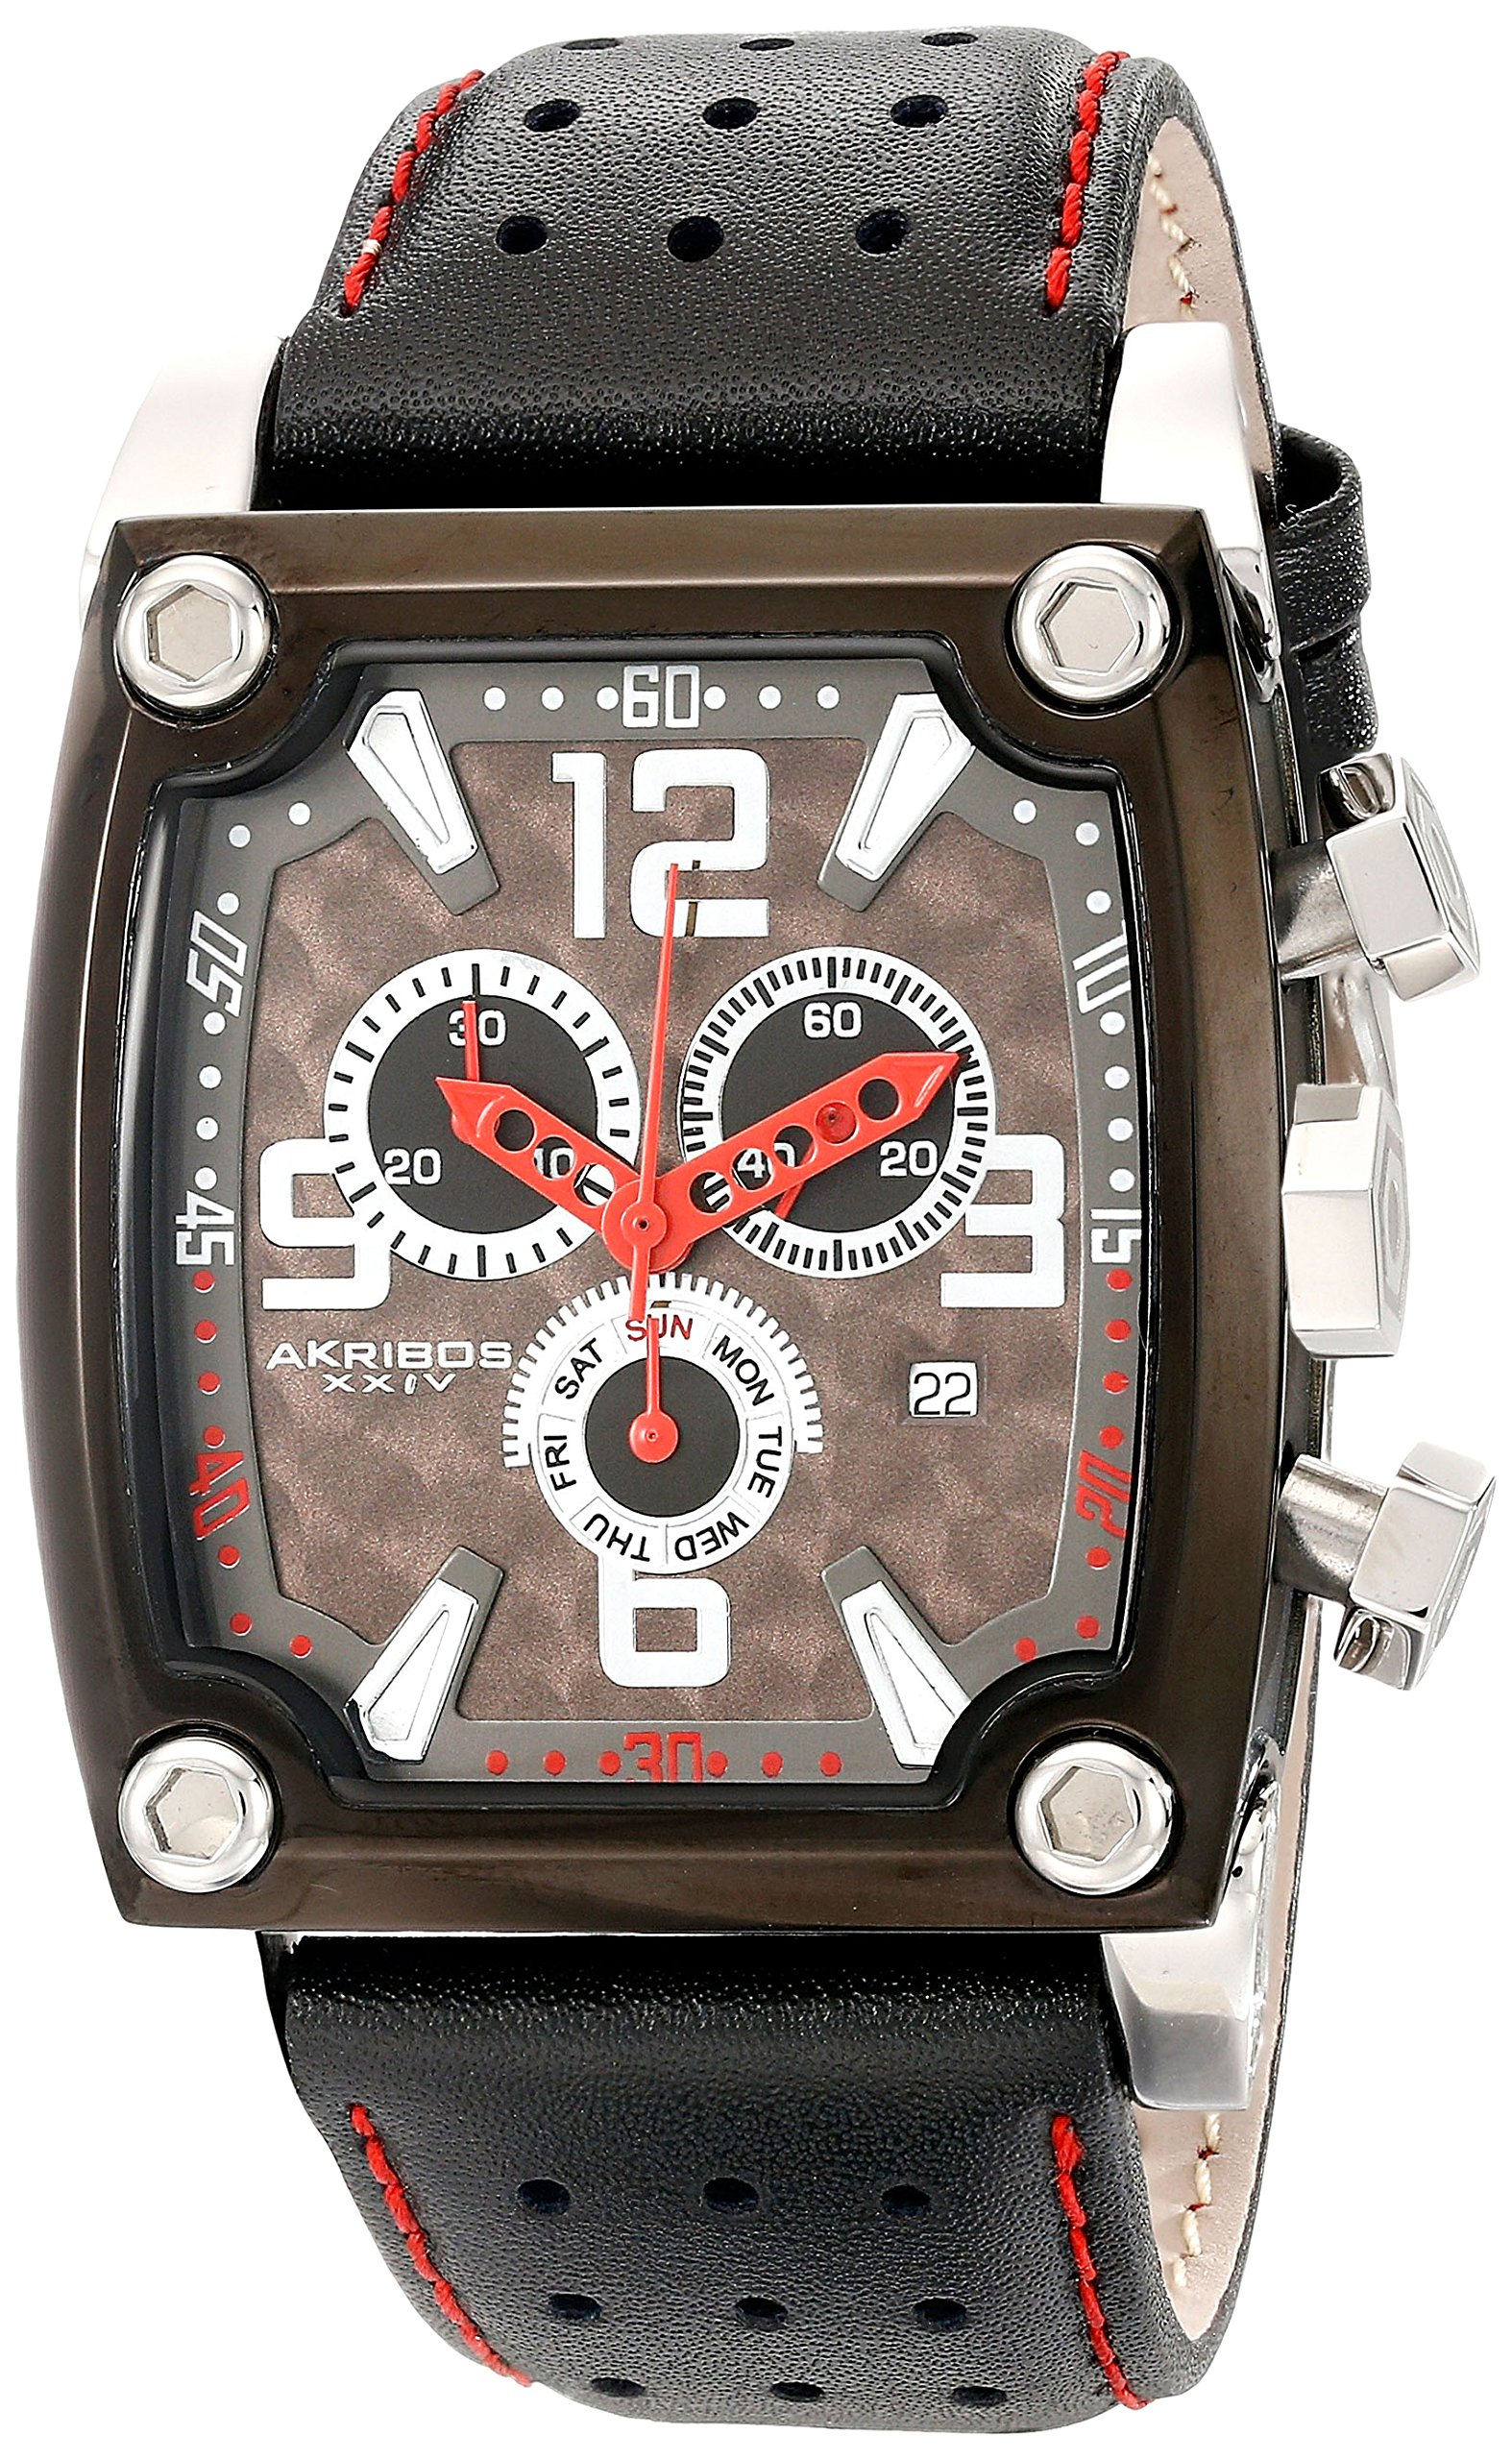 "Akribos XXIV Men's AKR415BK ""Conqueror"" Stainless Steel Watch with Black Leather Strap"